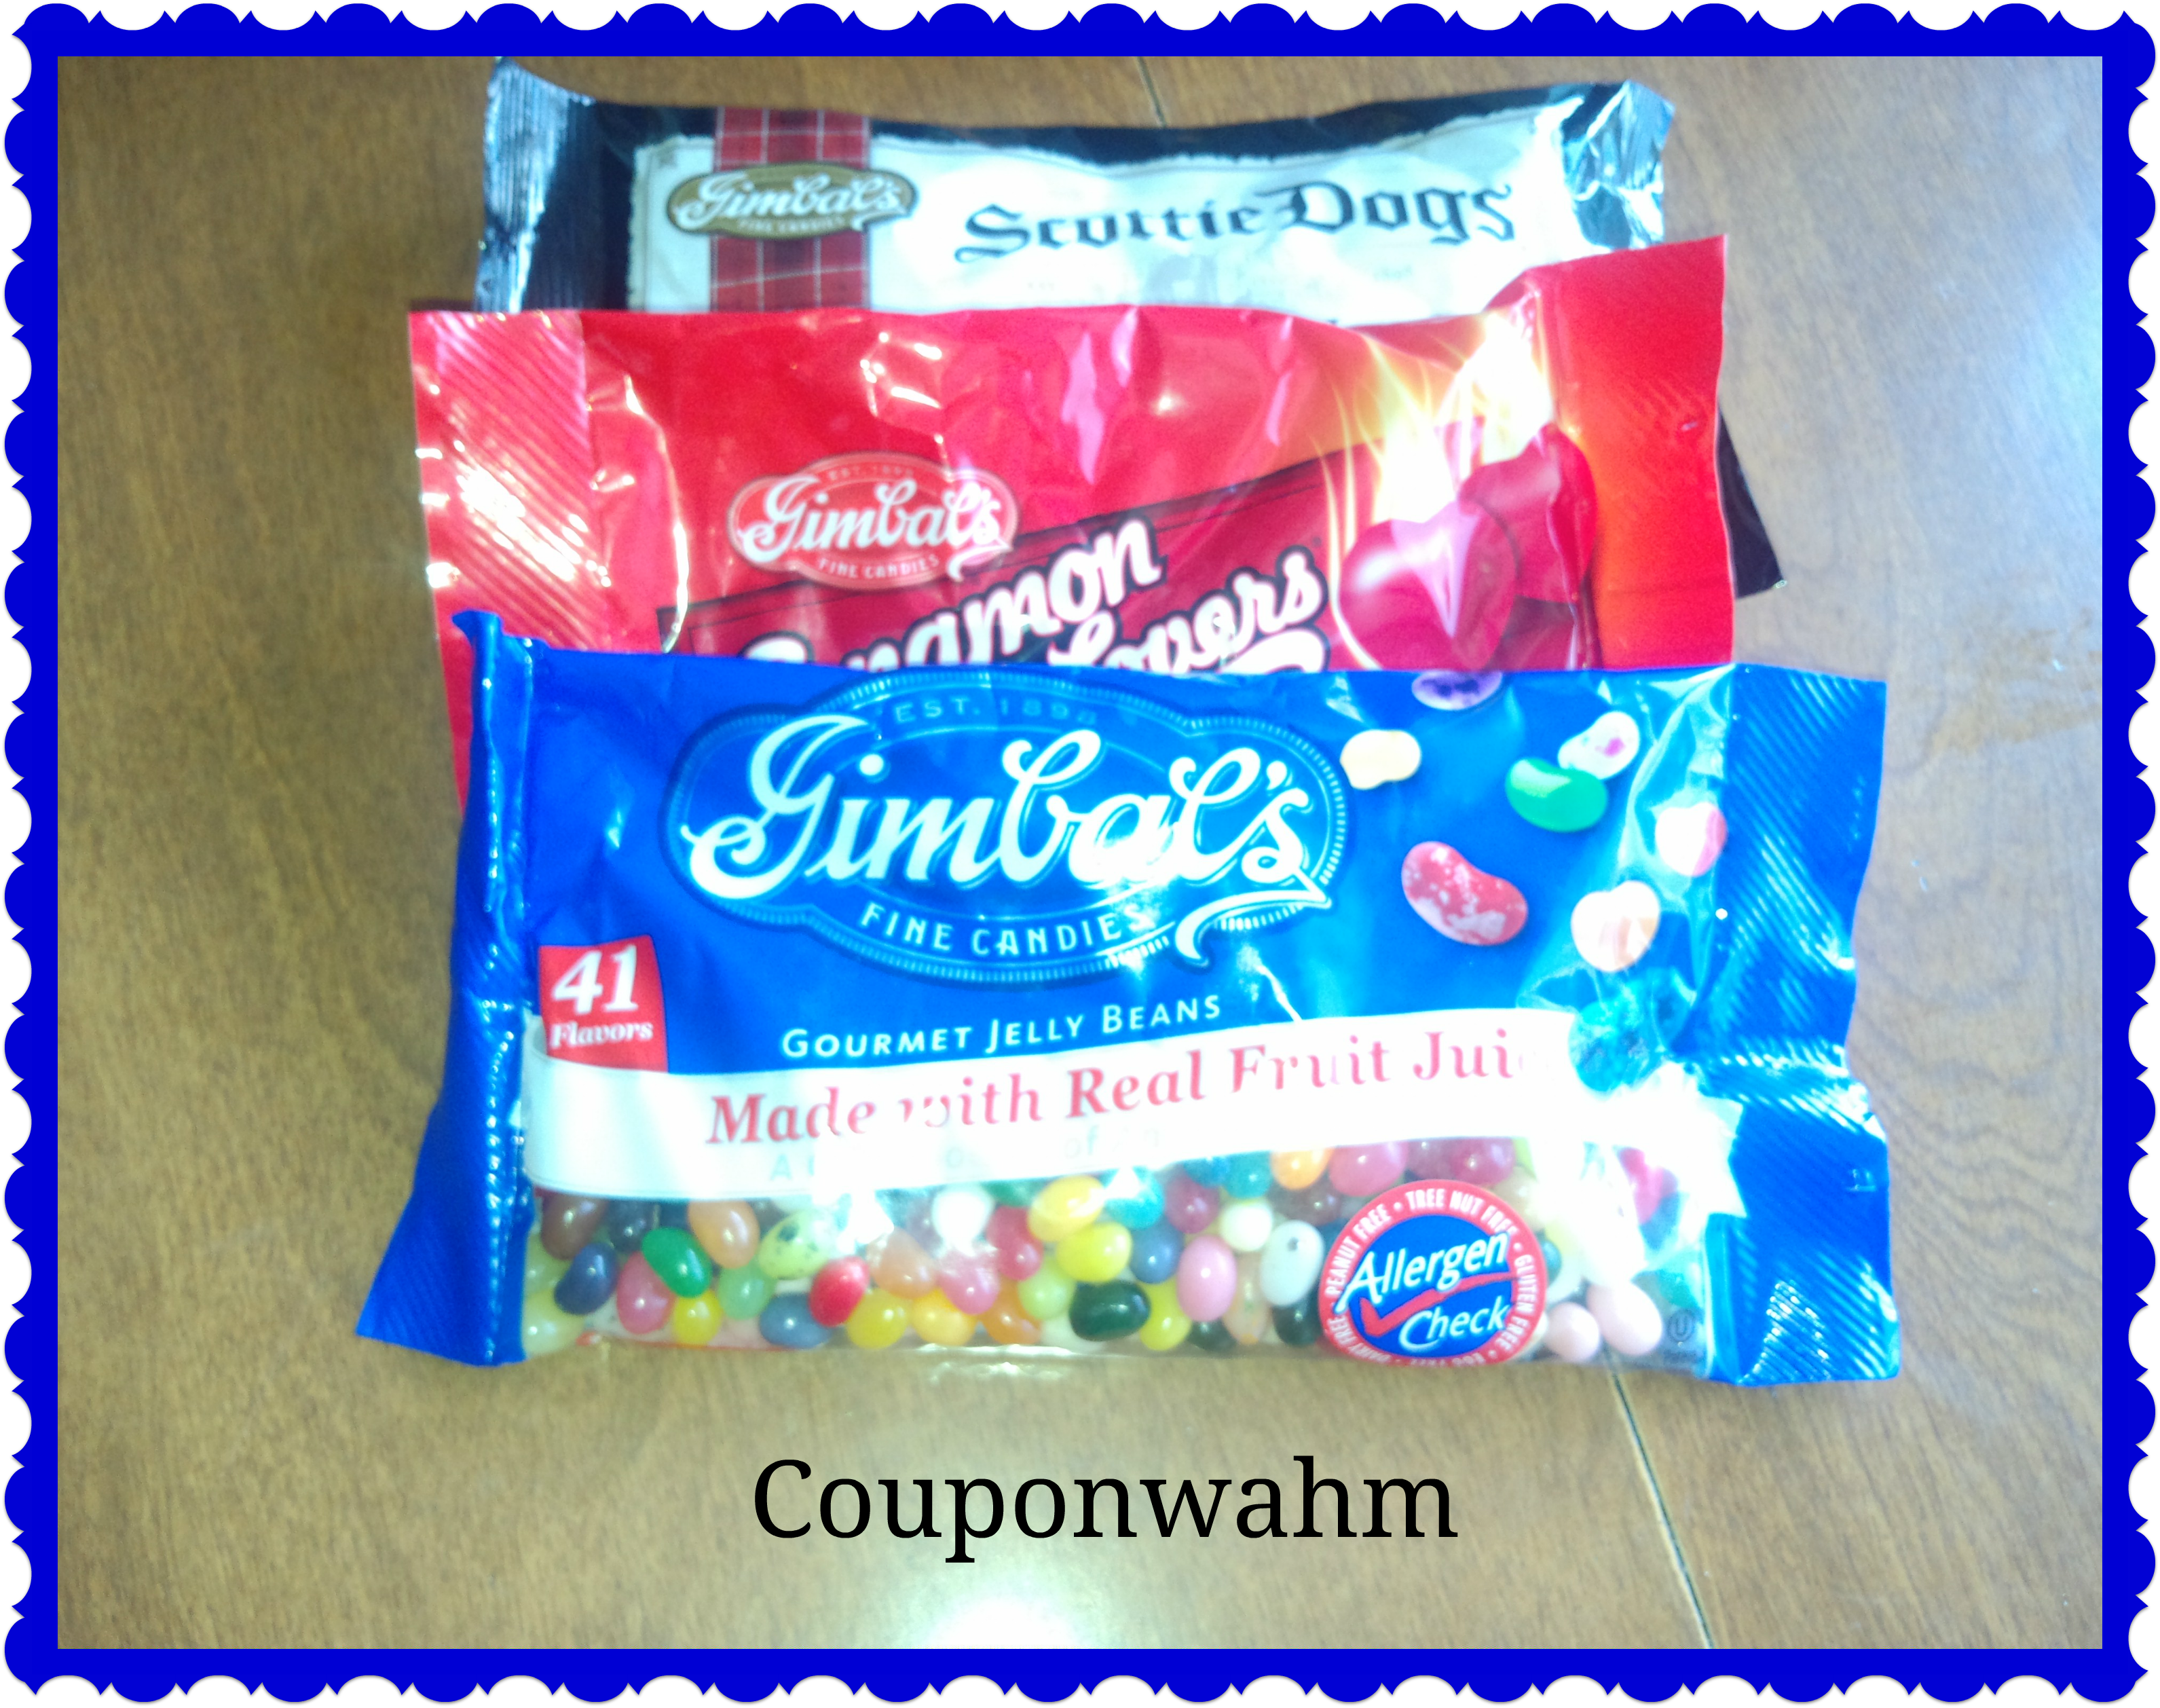 Gimbals Fine Candies Offers Allergen Free Candies  #reviews